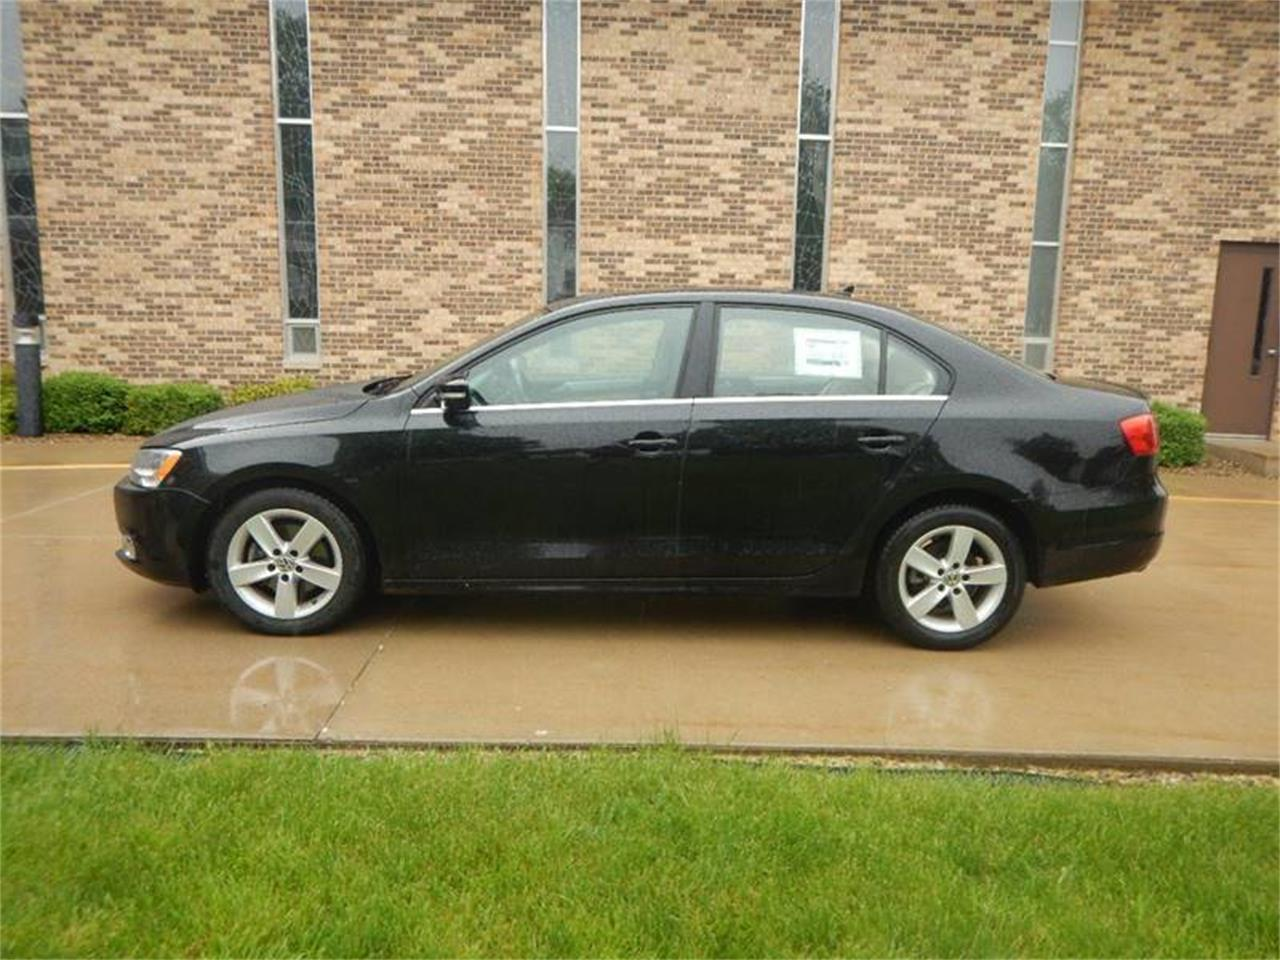 Large Picture of 2012 Volkswagen Jetta - $8,995.00 - Q48I